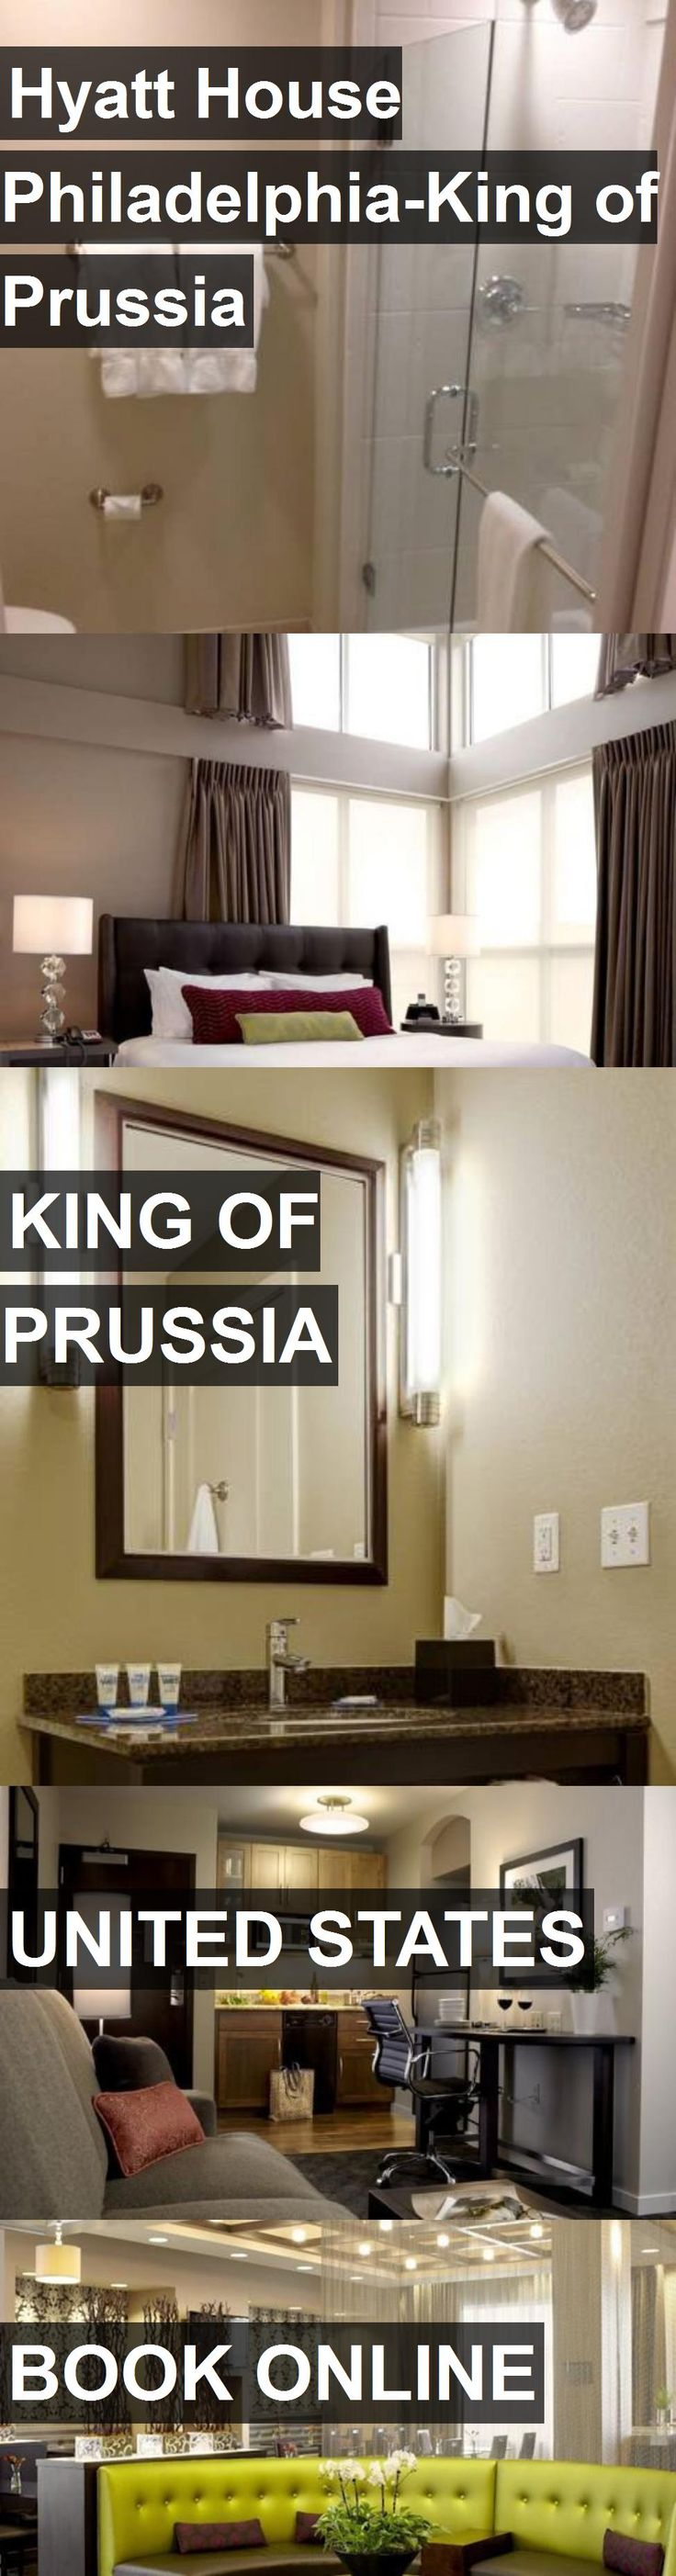 Hotel Hyatt House Philadelphia-King of Prussia in King Of Prussia, United States. For more information, photos, reviews and best prices please follow the link. #UnitedStates #KingOfPrussia #travel #vacation #hotel